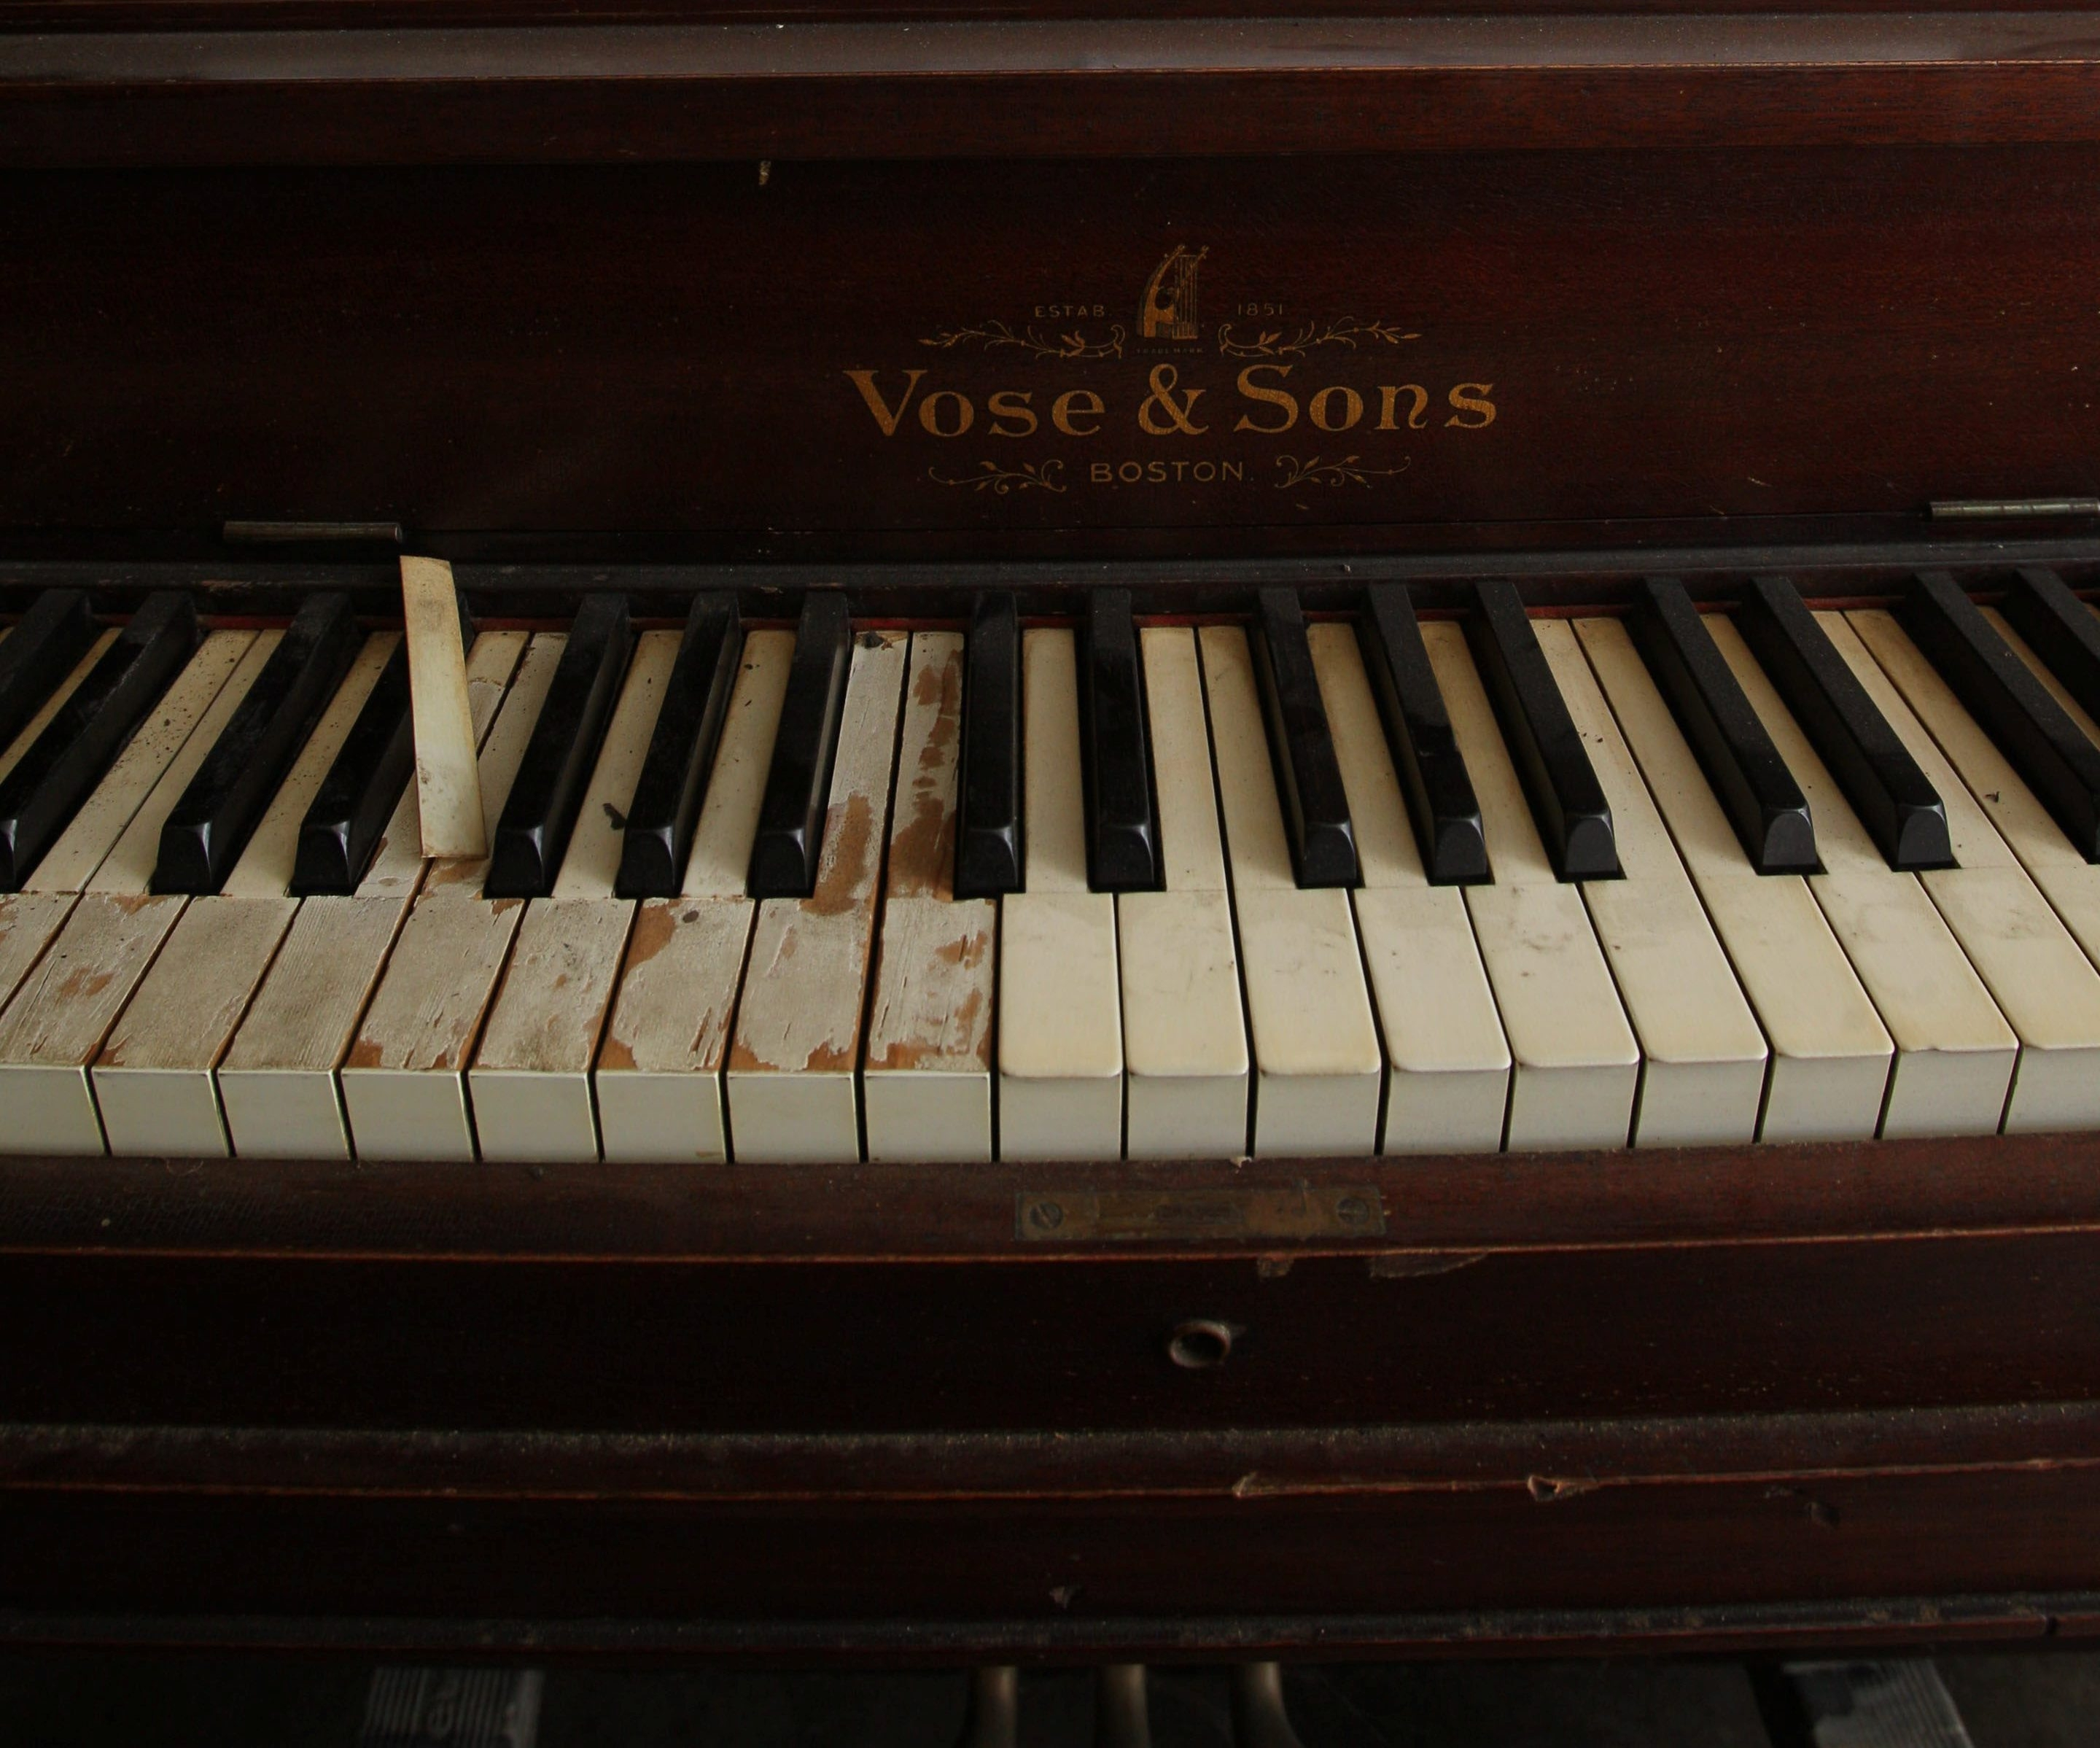 A gift of a free piano may cost you hundreds - or more - down the line. (Buffalo News file photo)